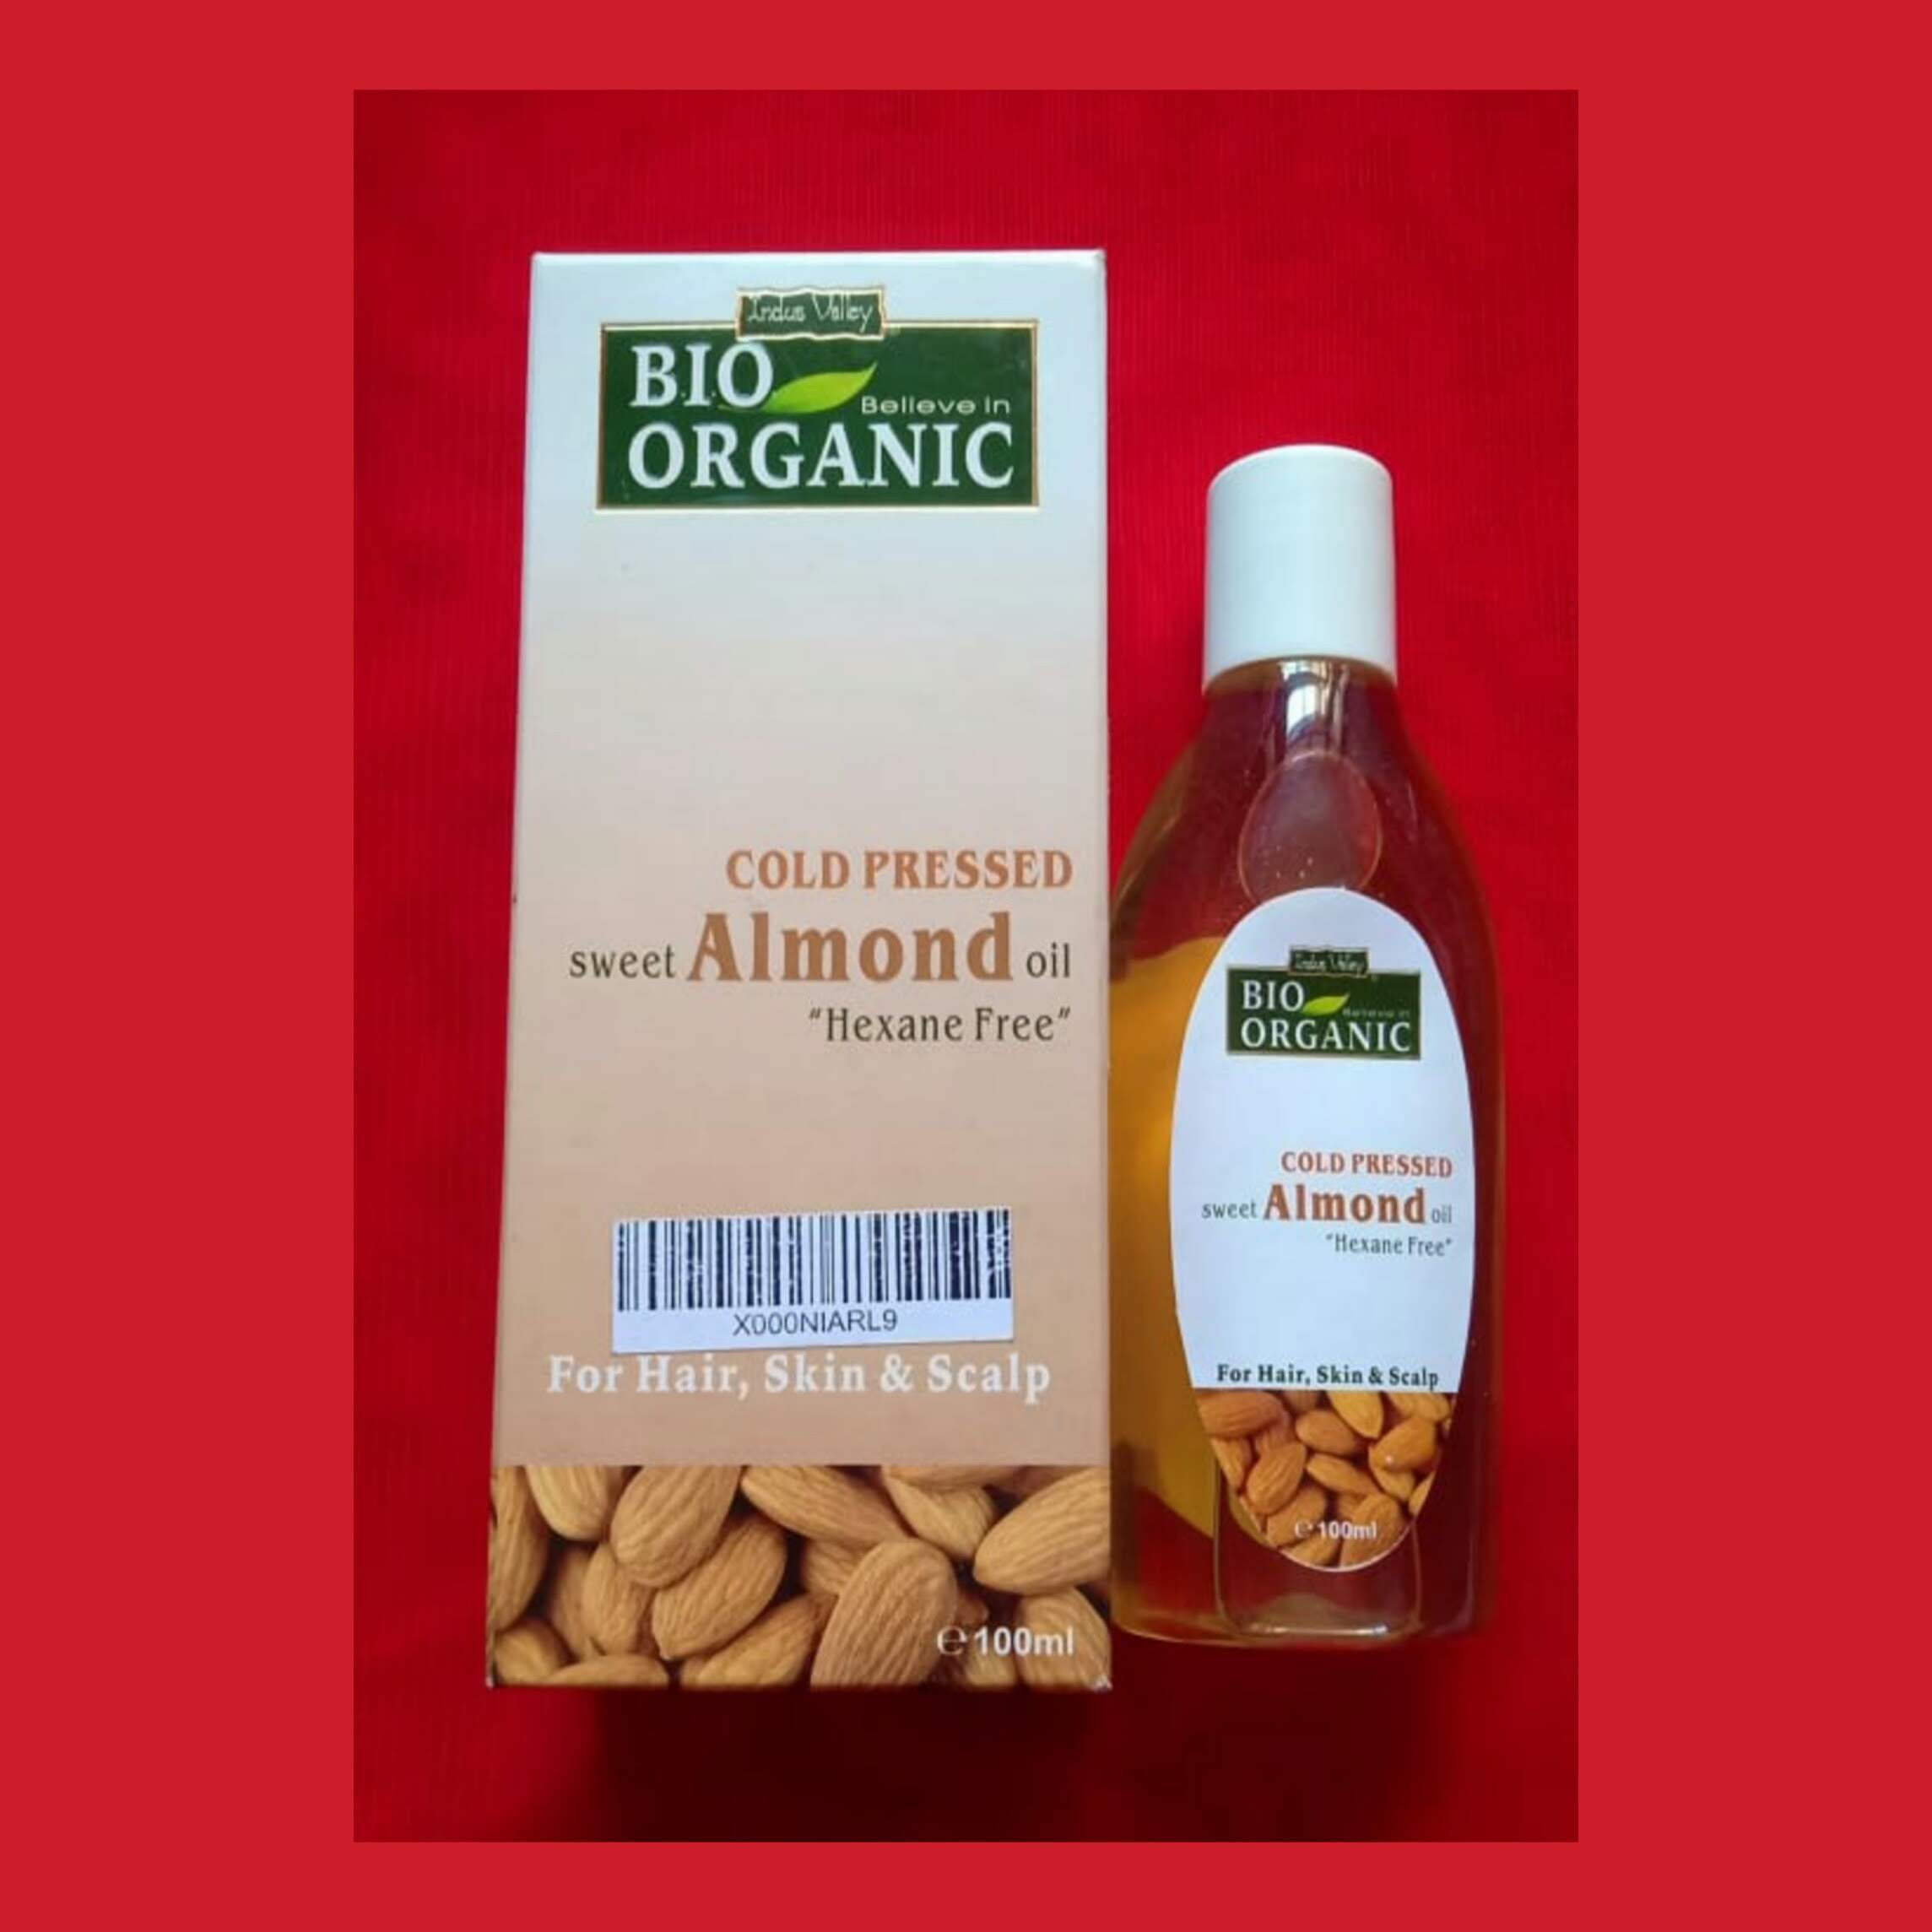 Indus Valley Cold Pressed Sweet Almond Oil -Works well for dry skin-By ruchikaudhwani